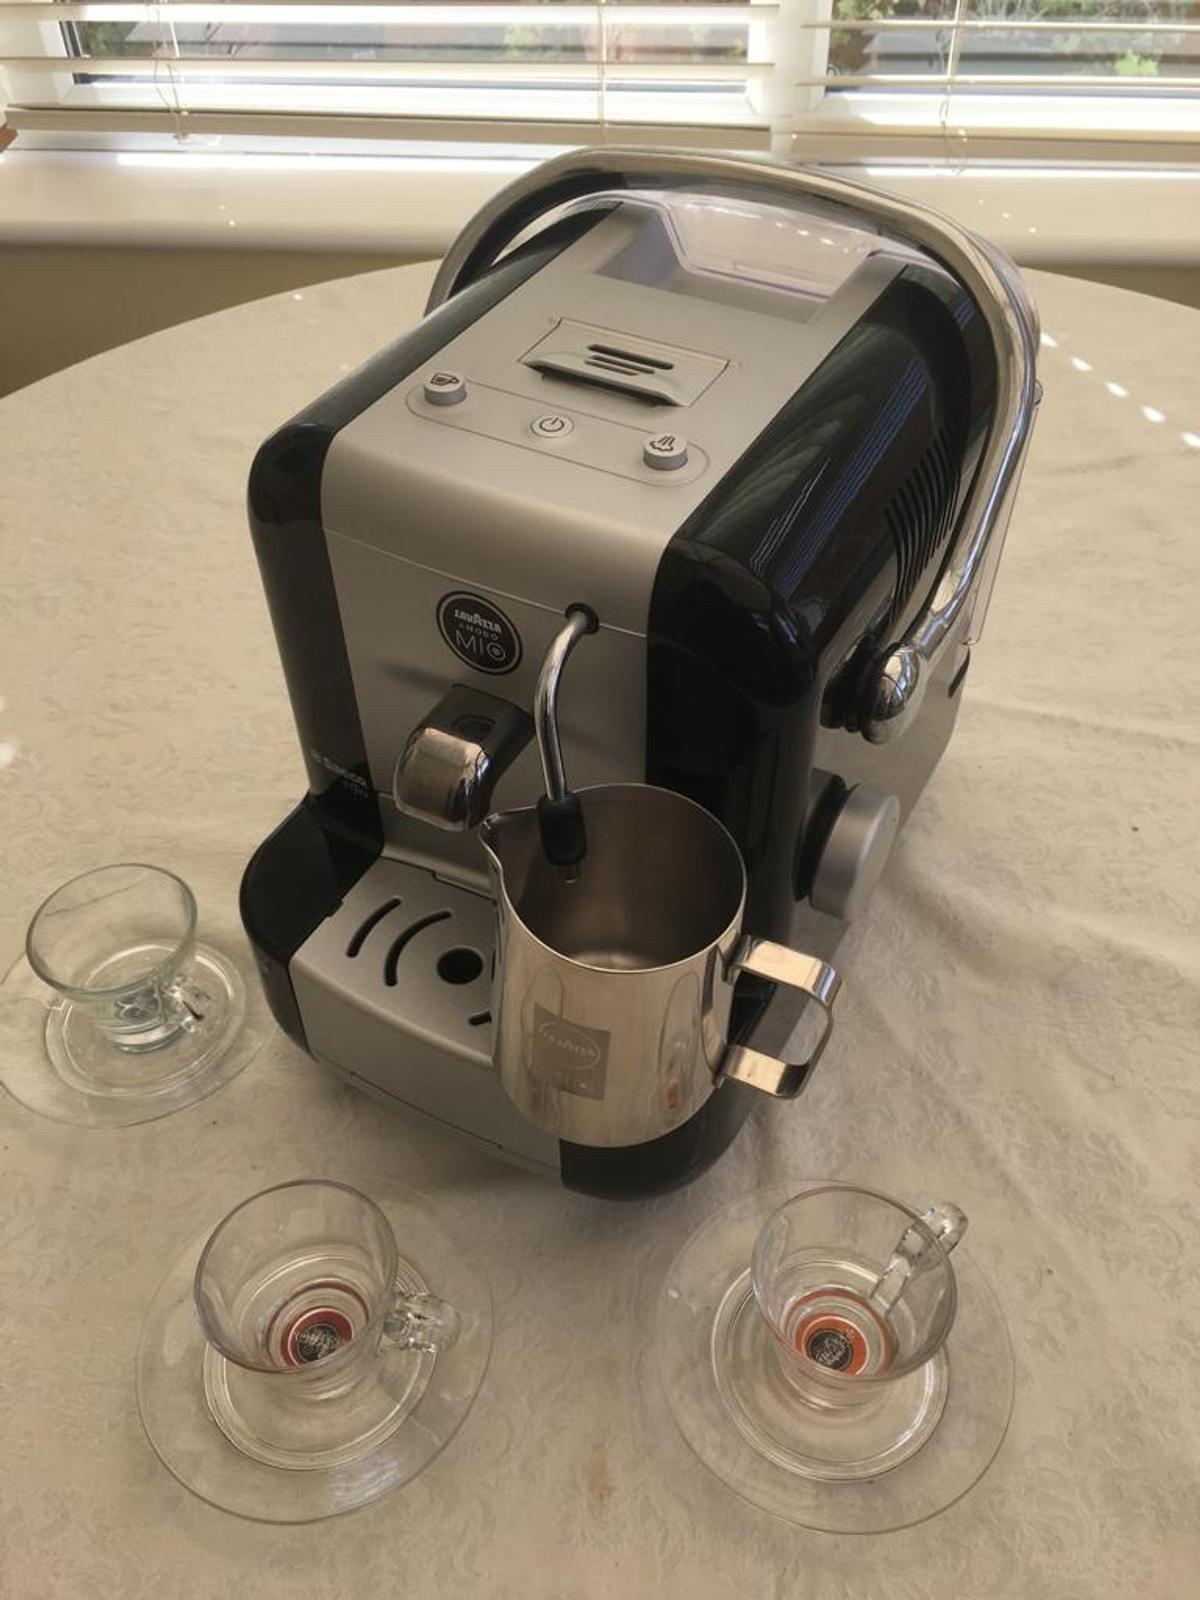 Lavazzo Amodo Mio Saeco Extra Coffee Machine in RM7 Havering